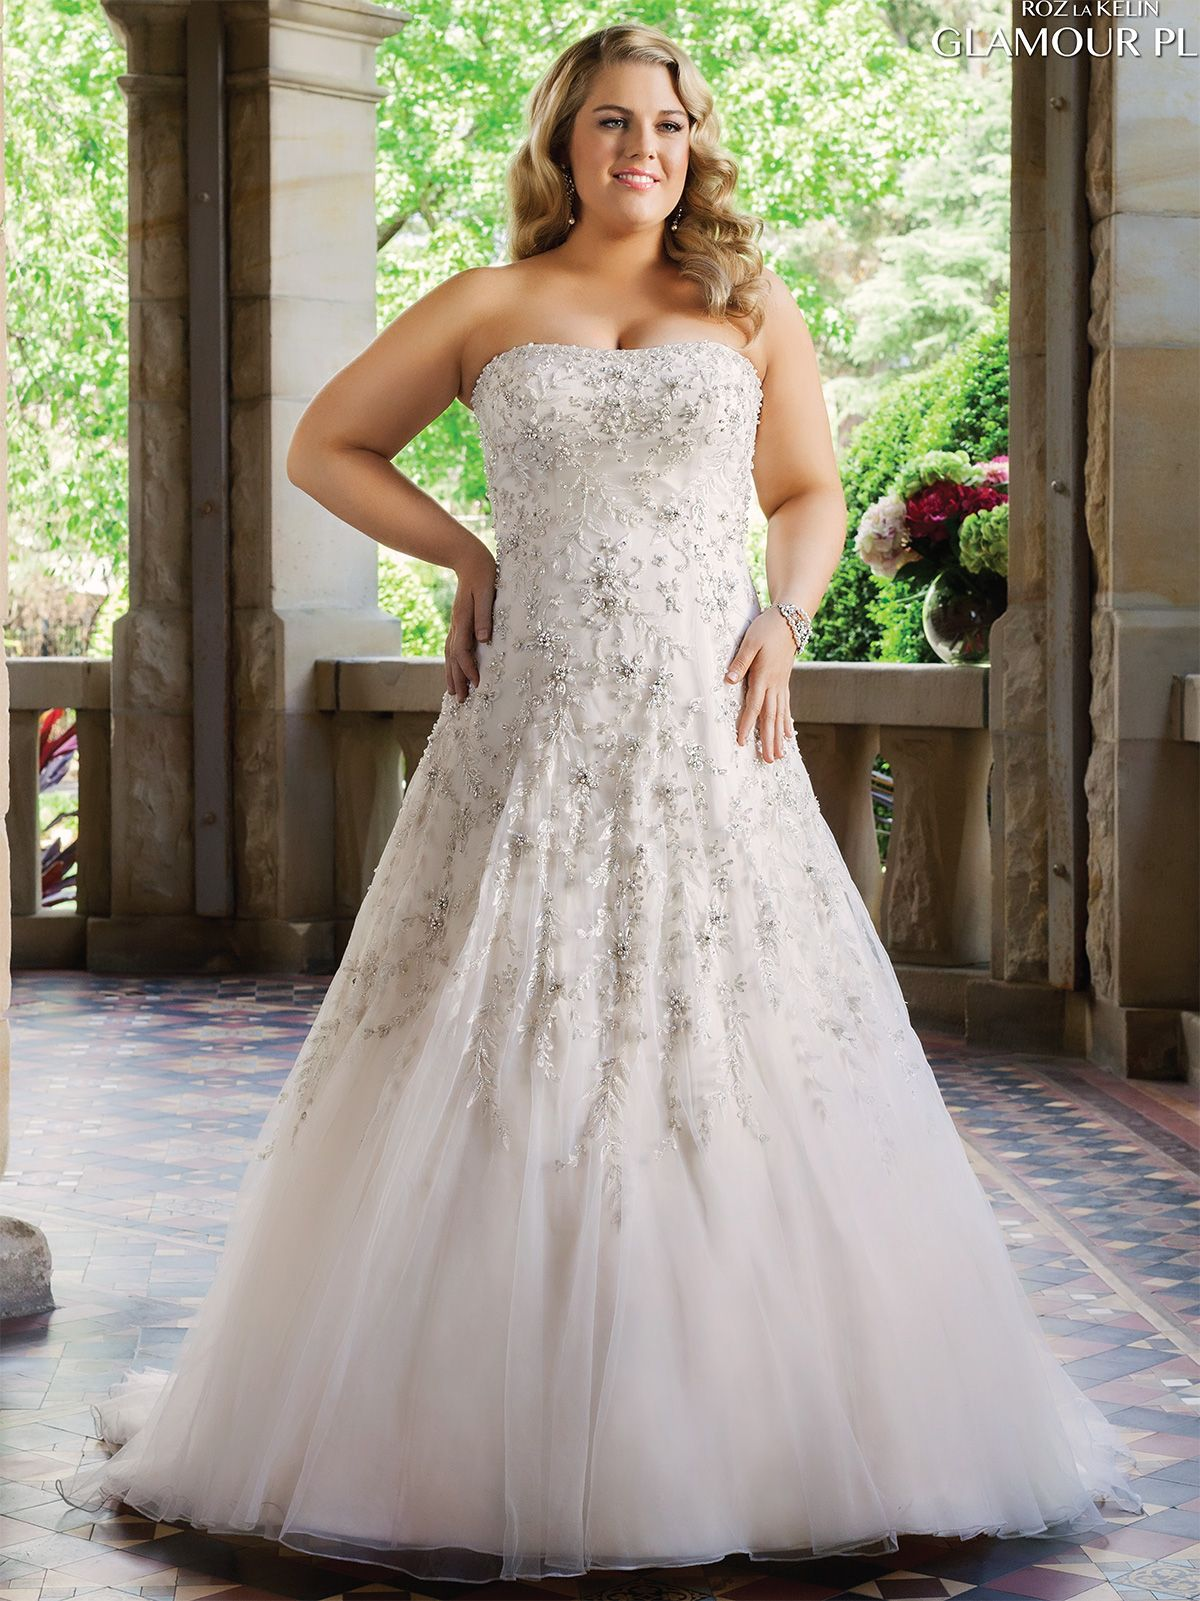 Rozlakelin plus size wedding gown esther dimitradesigns in rozlakelin plus size wedding gown esther dimitradesigns in champagne ombrellifo Gallery